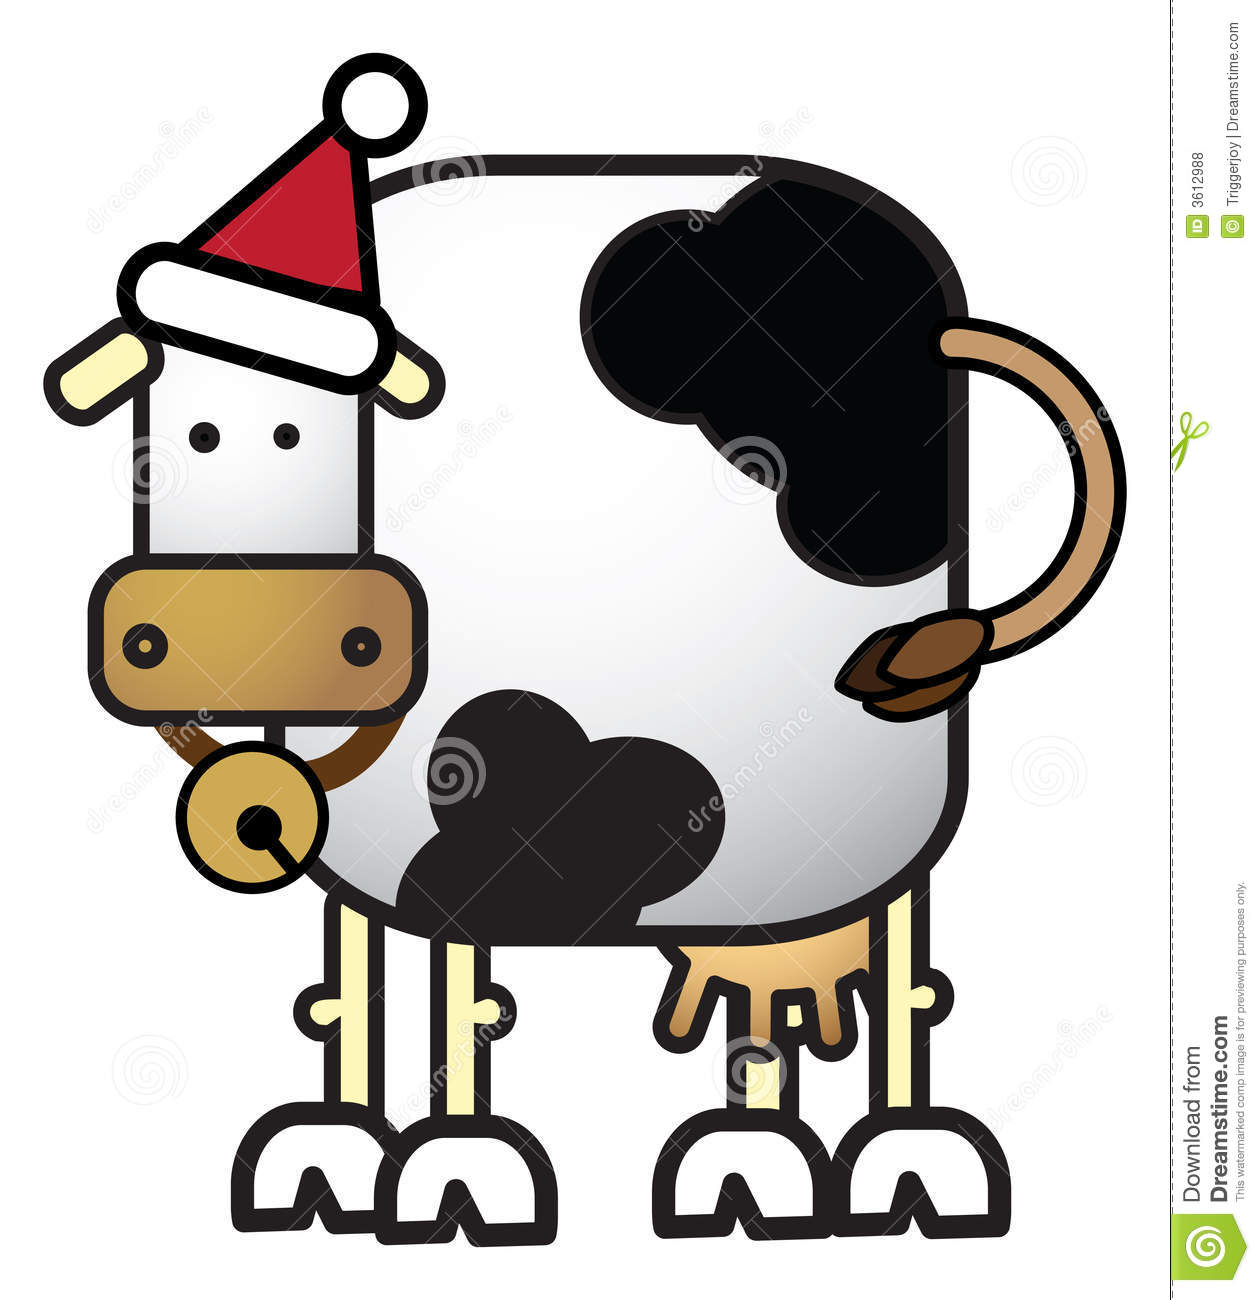 hight resolution of 1260x1300 christmas cows clipart